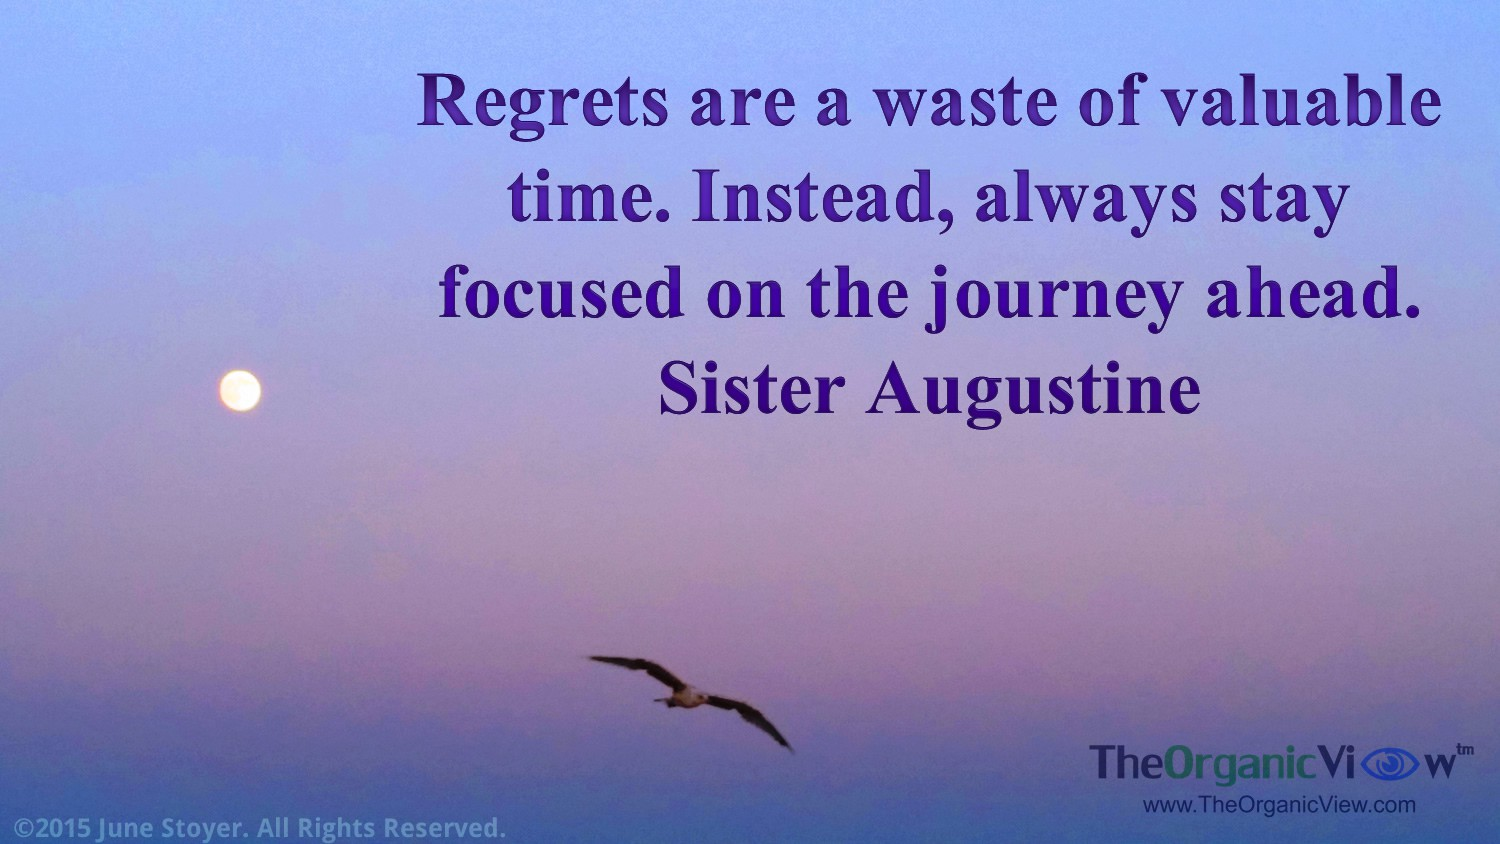 Regrets are a waste of valuable time. Instead, always stay focused on the journey ahead. Sister Augustine